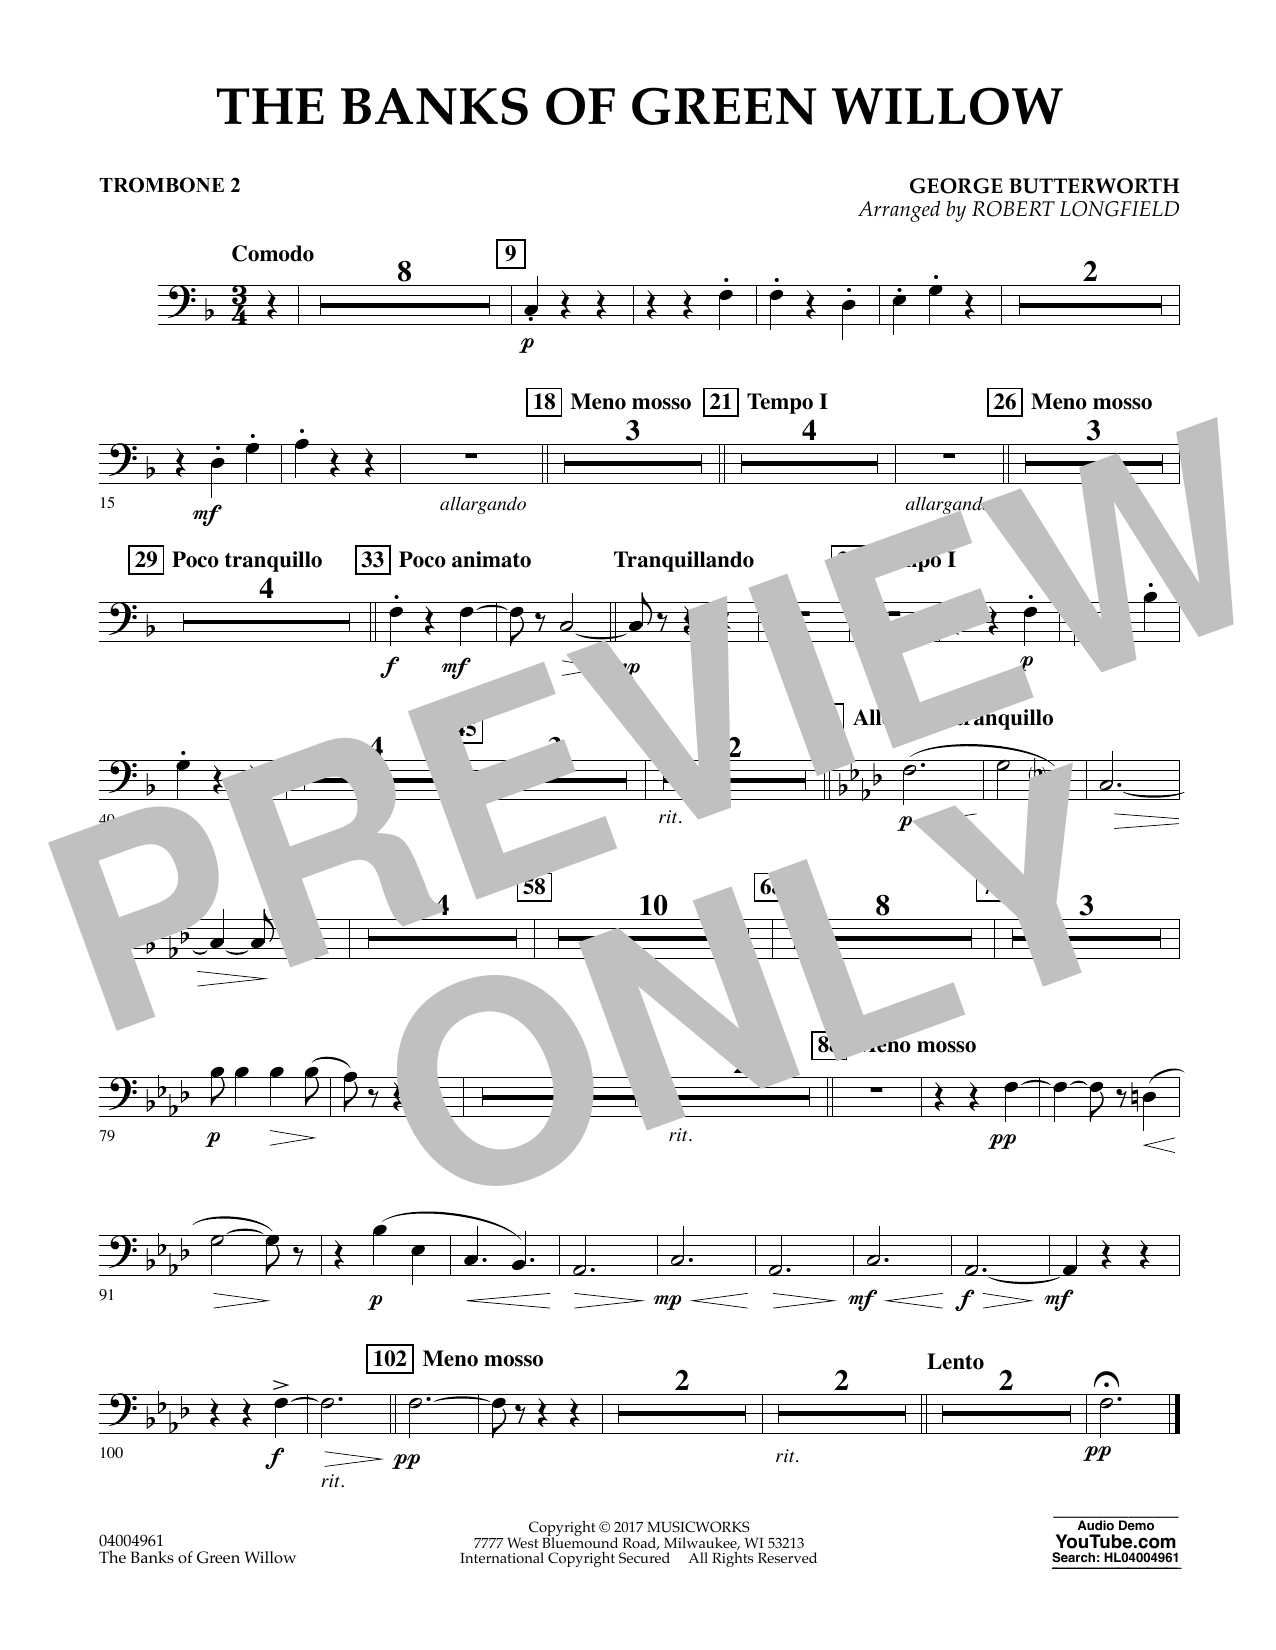 The Banks of Green Willow - Trombone 2 Sheet Music